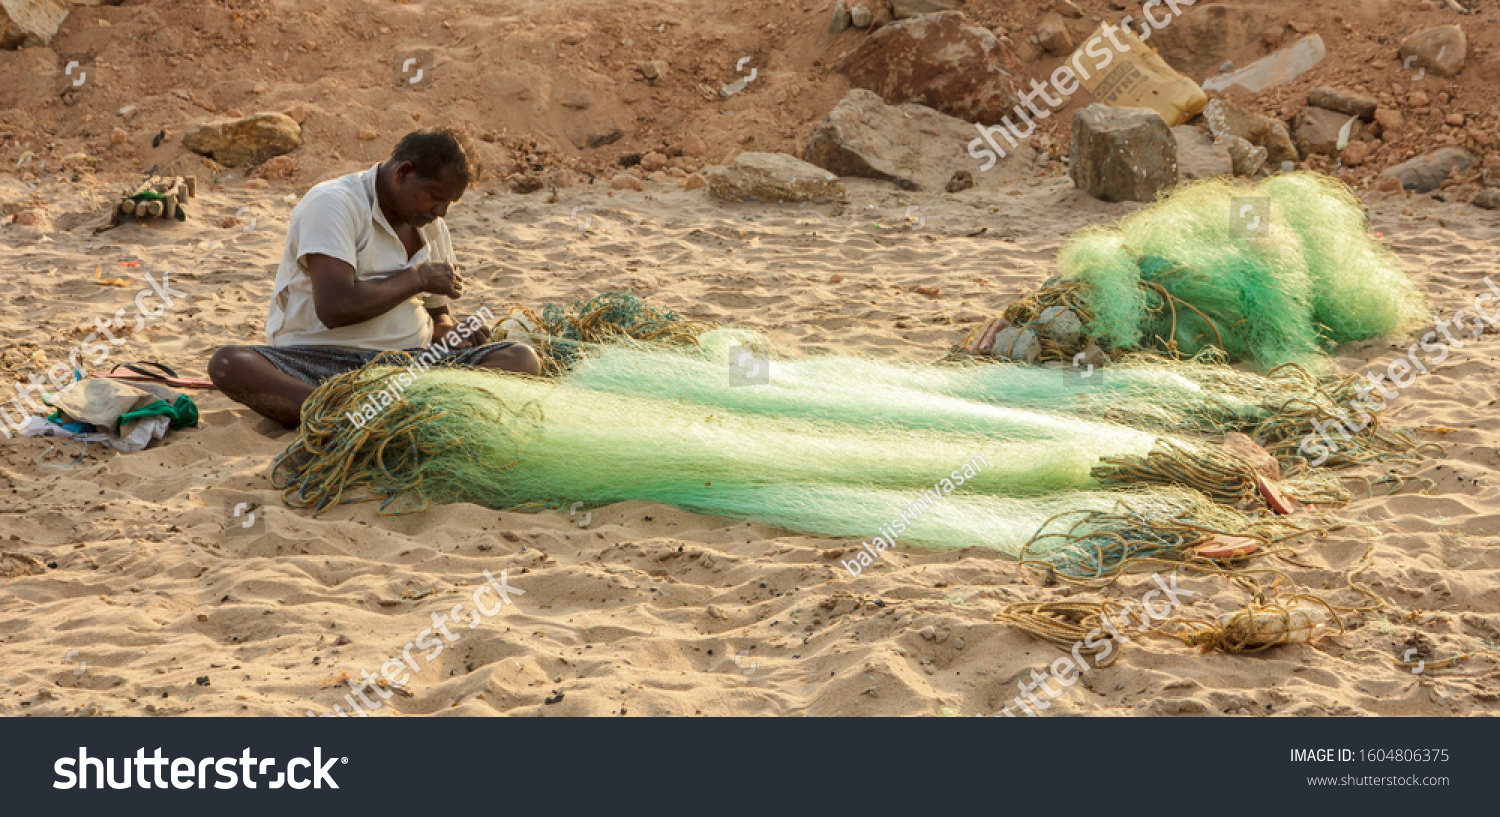 Visakhapatnam, Andhra Pradesh, India - February 2018: A fisherman sits on the beach and works at his green fishing nets in Rushikonda.